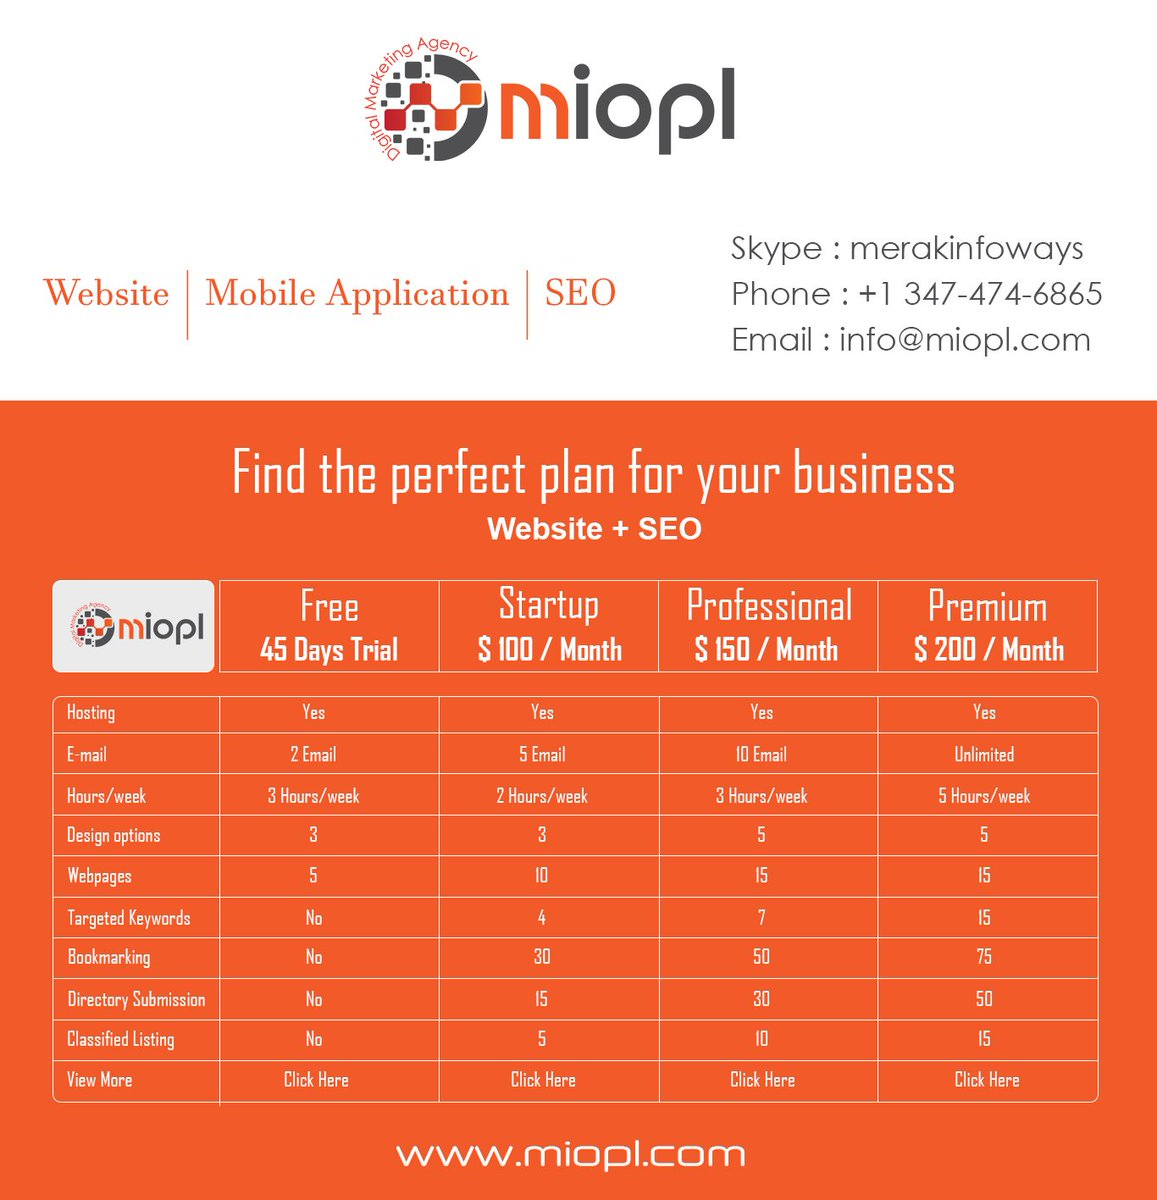 Here's Plans for #WEBSITE + #SEO for your website at good price #SEOservices #SMO #SMOservices #socialmediamarketing #SMM #LocalSEO #MobileMarketing #DigitalMarketing #Brading #reputationmanagement #Socialpagemanagement #onpageSEO #offpageSEO #InfluencerMarketing <br>http://pic.twitter.com/7yf5IzdExe